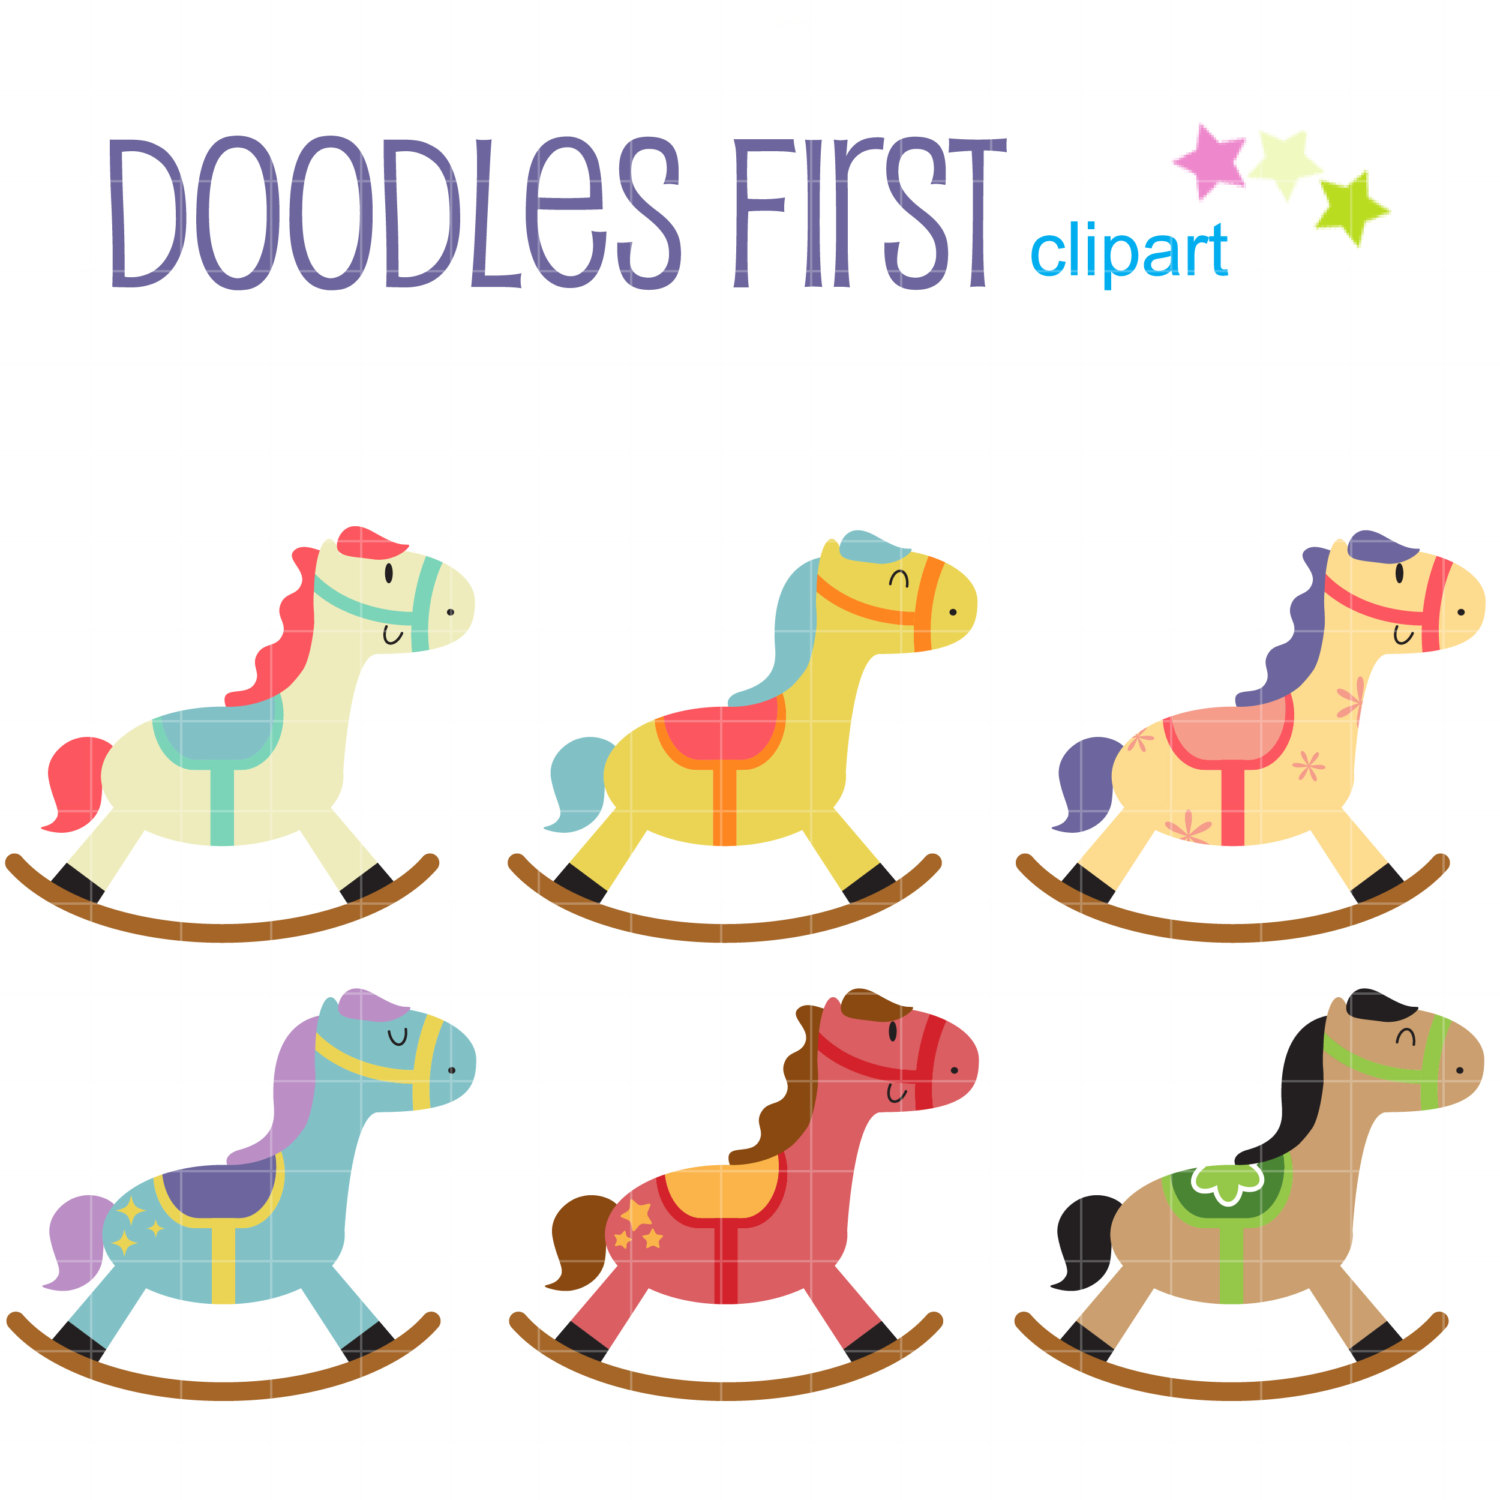 Carousel clipart rocking horse Making Rocking Paper Etsy topper